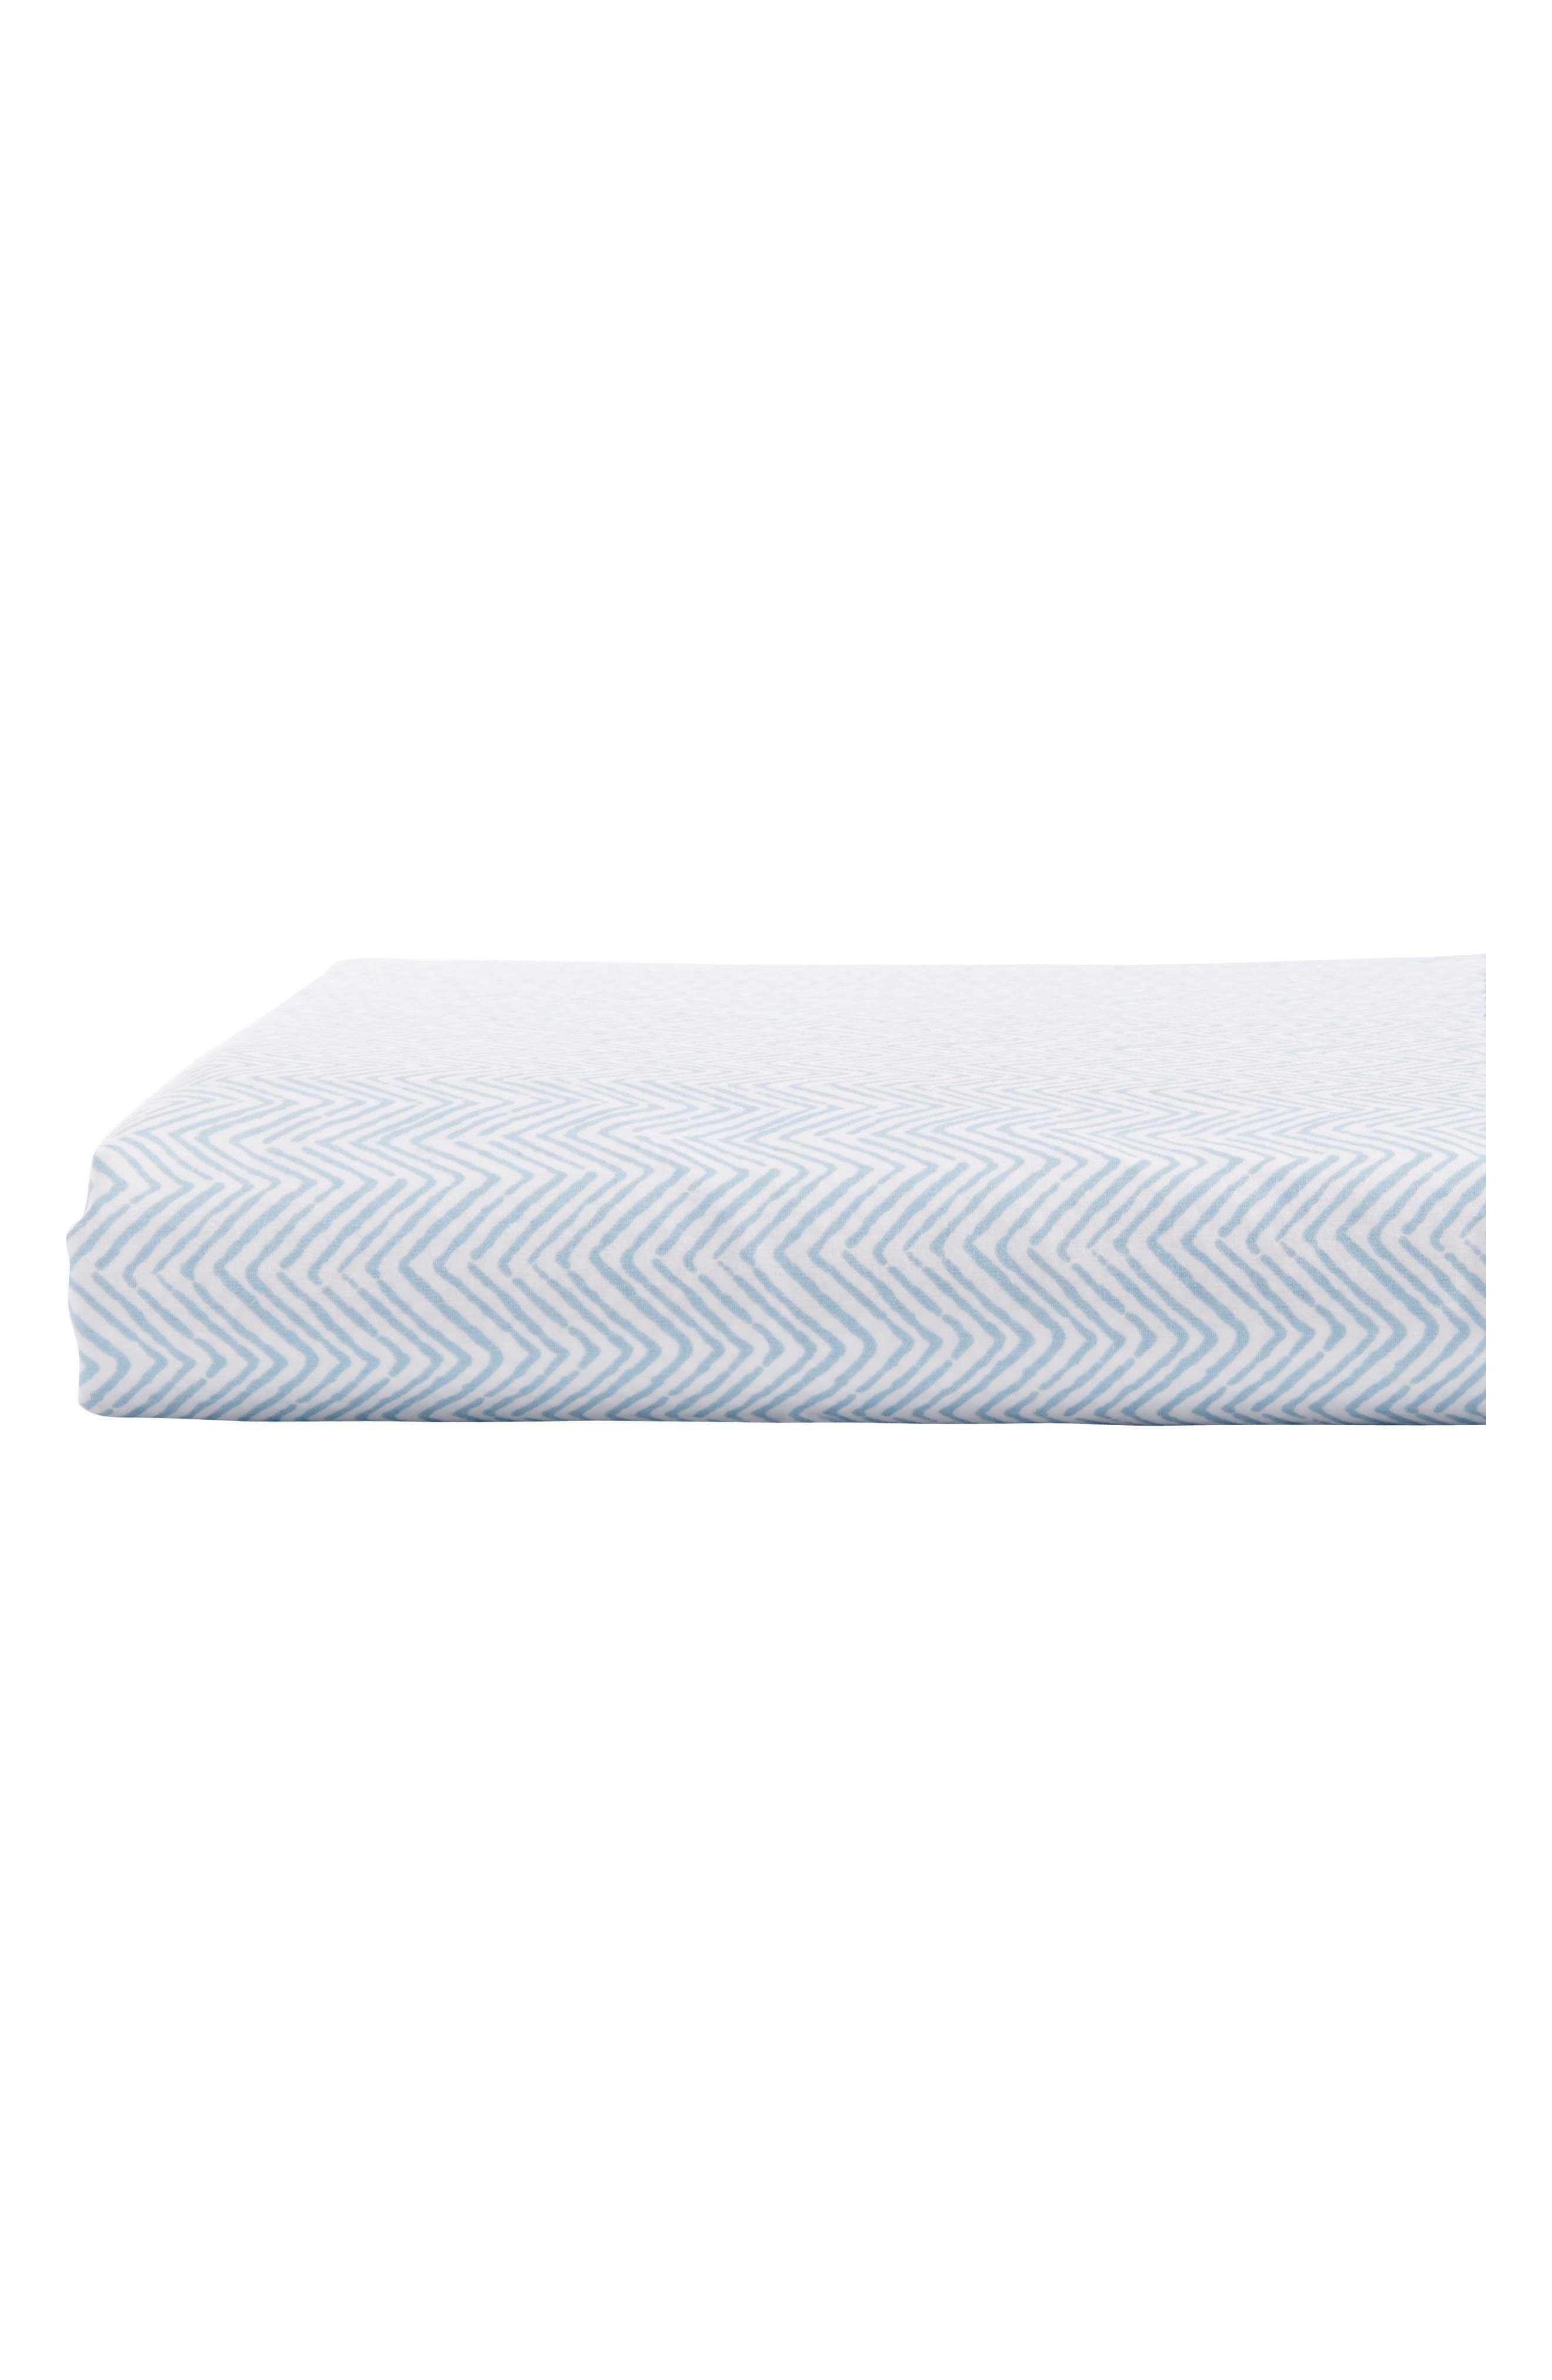 Alternate Image 1 Selected - John Robshaw Chevron 400 Thread Count Fitted Sheet